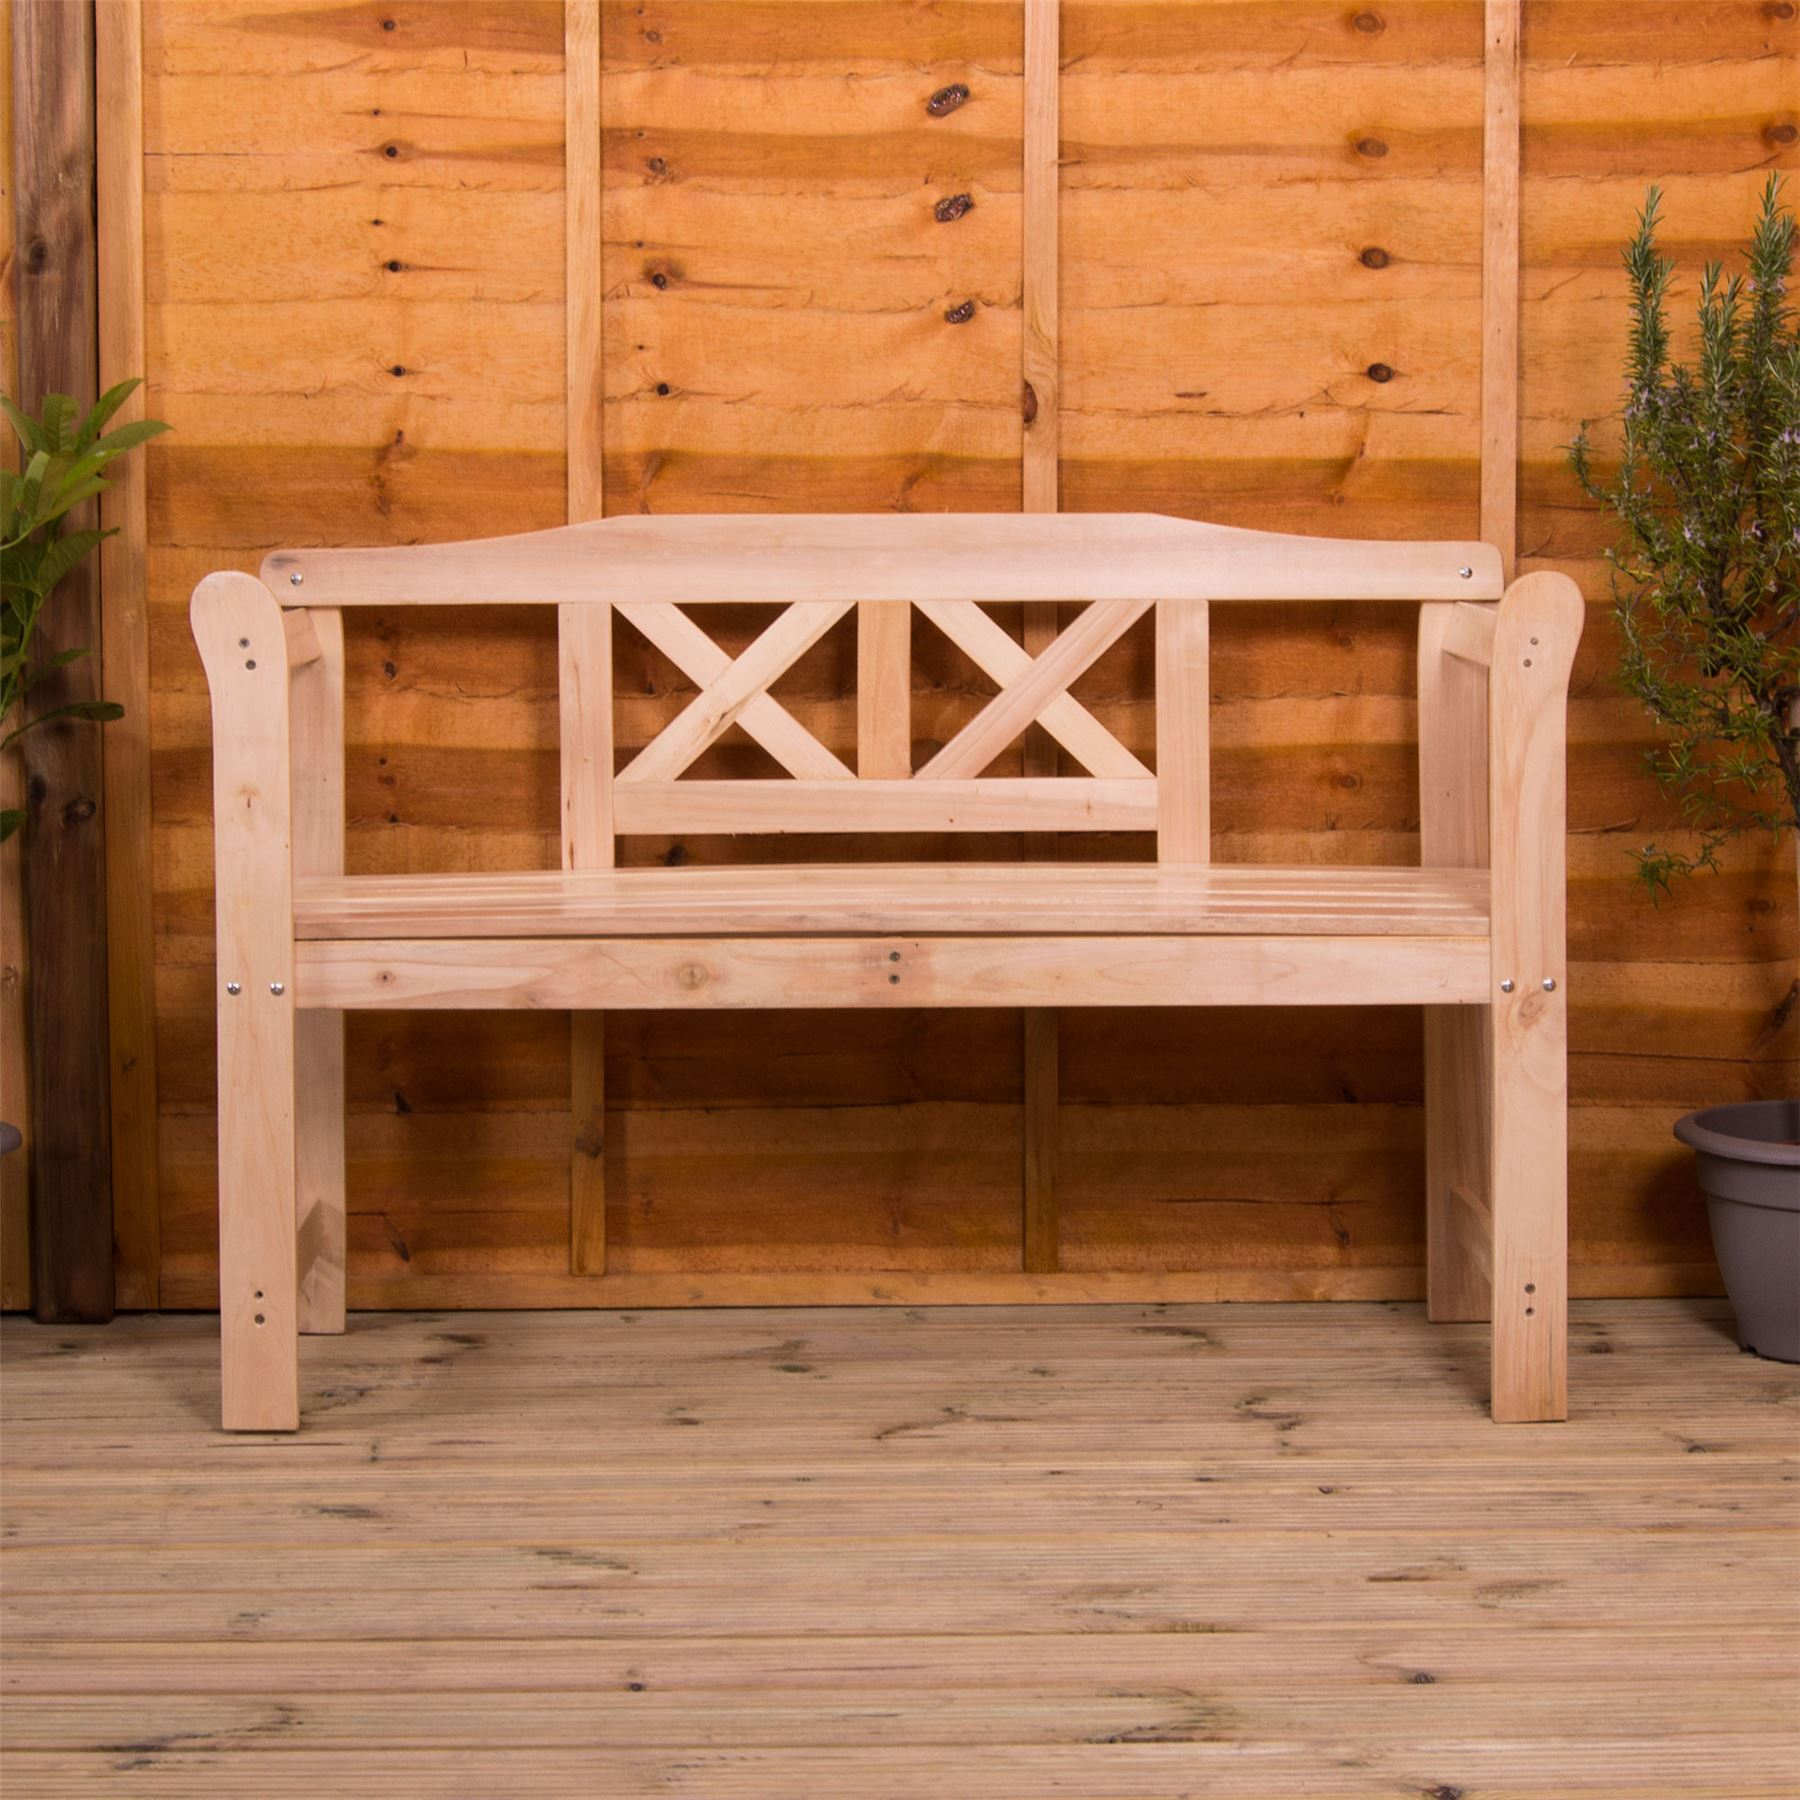 Incredible Details About Garden Bench 3 Seater Natural Wood Outdoor Patio Porch Chair Seat Furntiure Spiritservingveterans Wood Chair Design Ideas Spiritservingveteransorg